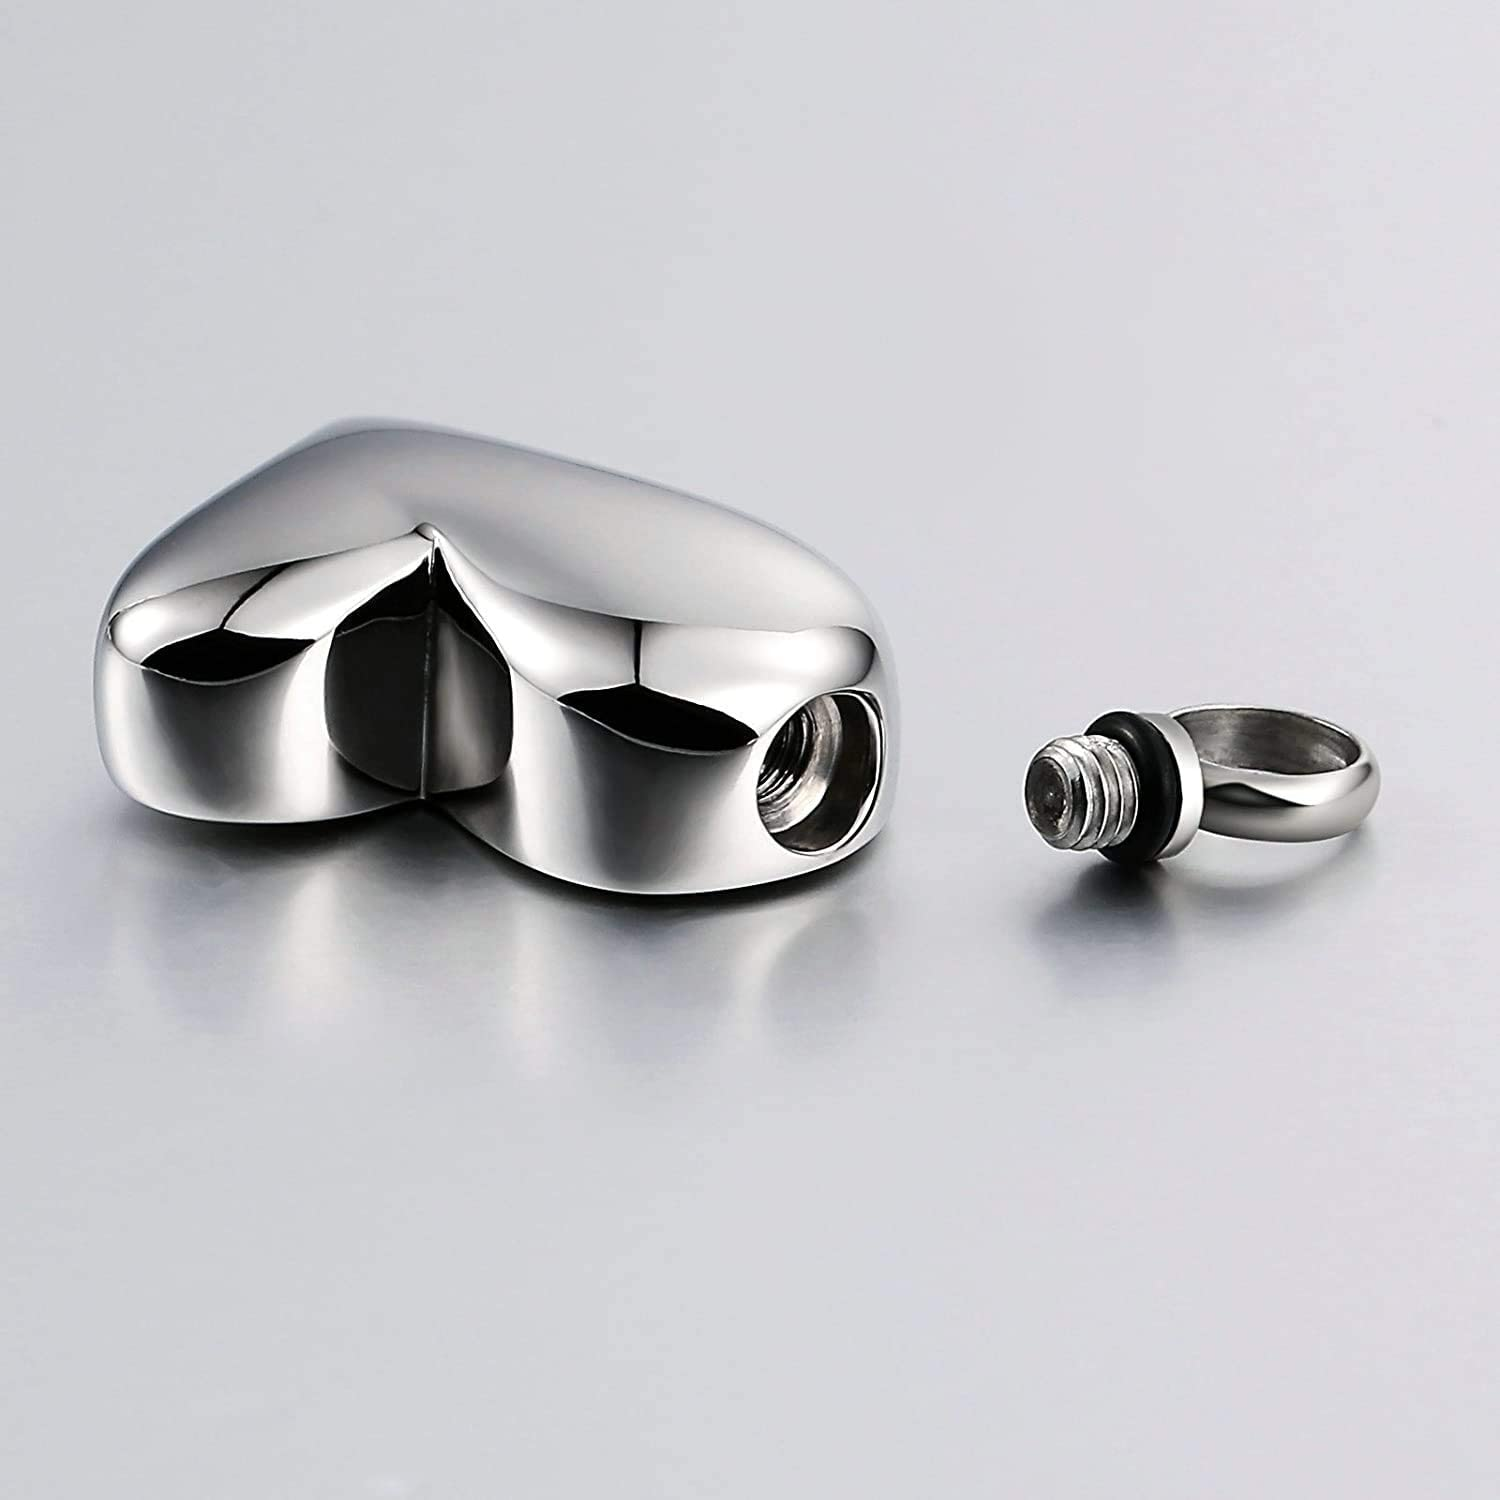 LOPEZ KENT Fashion Stainless Steel Memorial Necklace Urn for Ashes Smooth Irregular Heart Necklace Charm